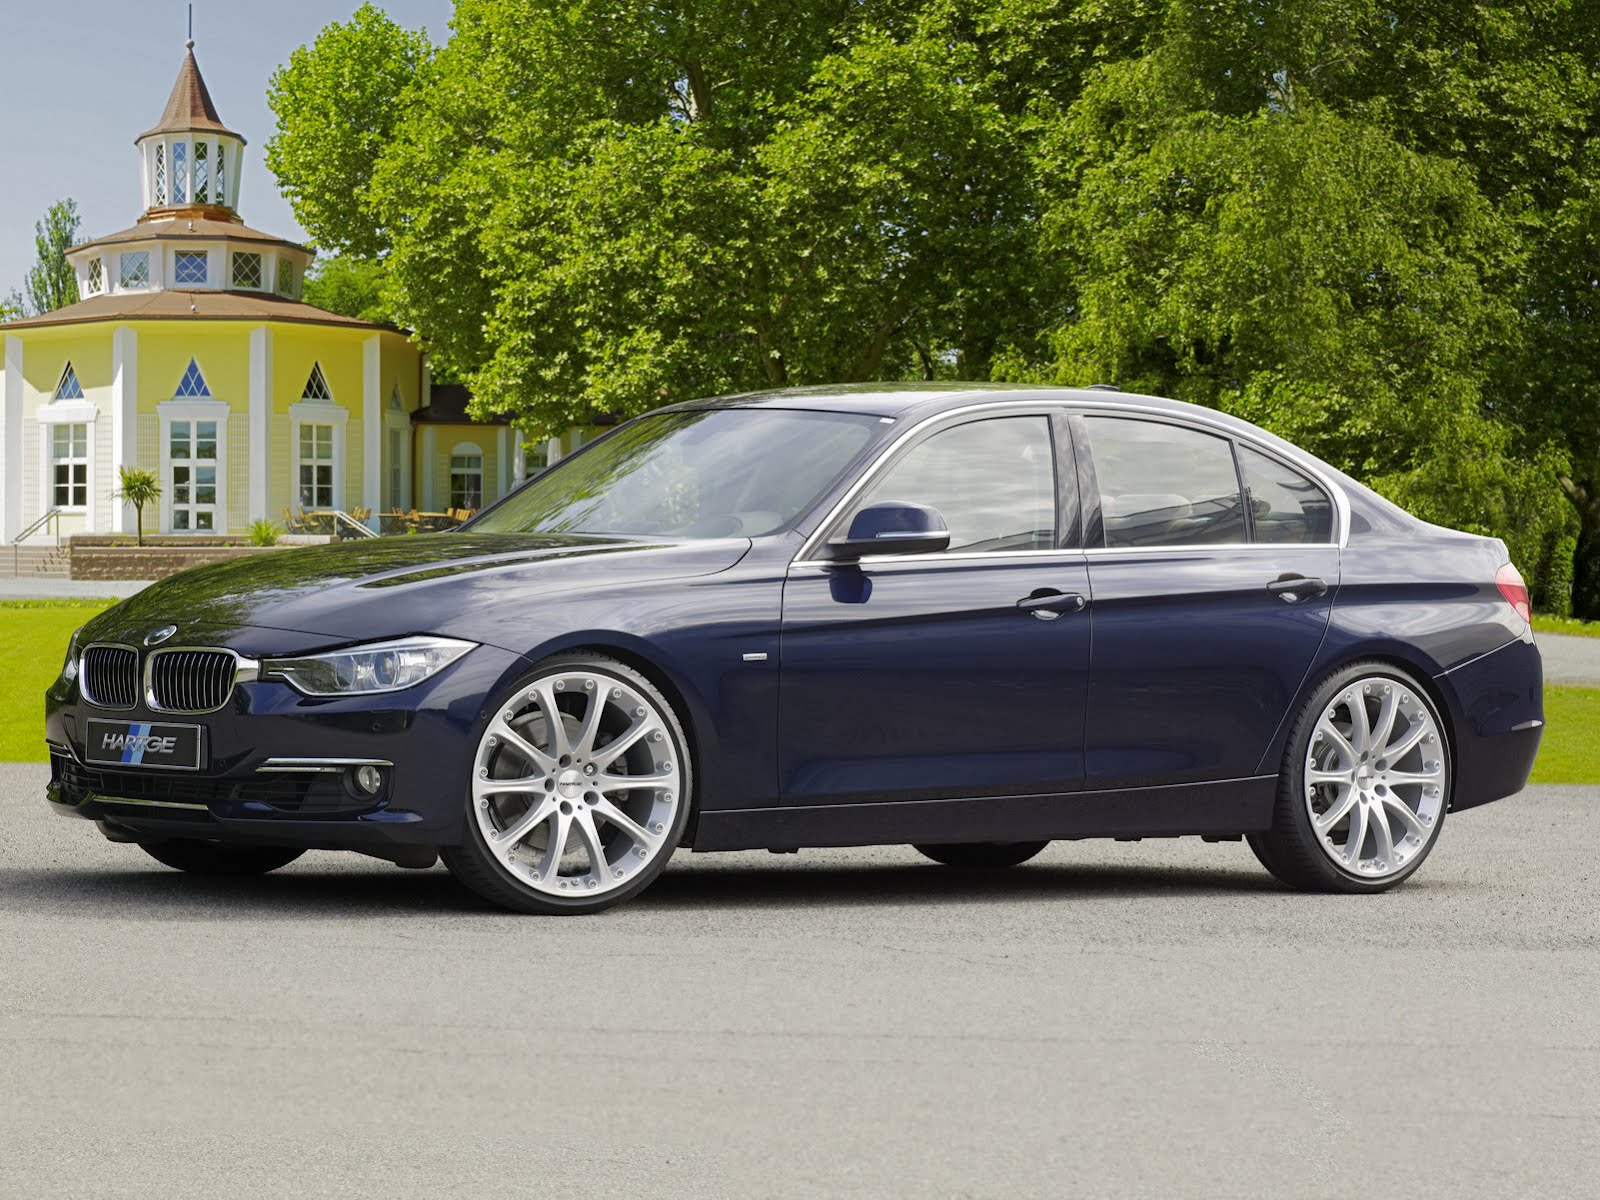 BMW 328i gets performance boost from Hartge